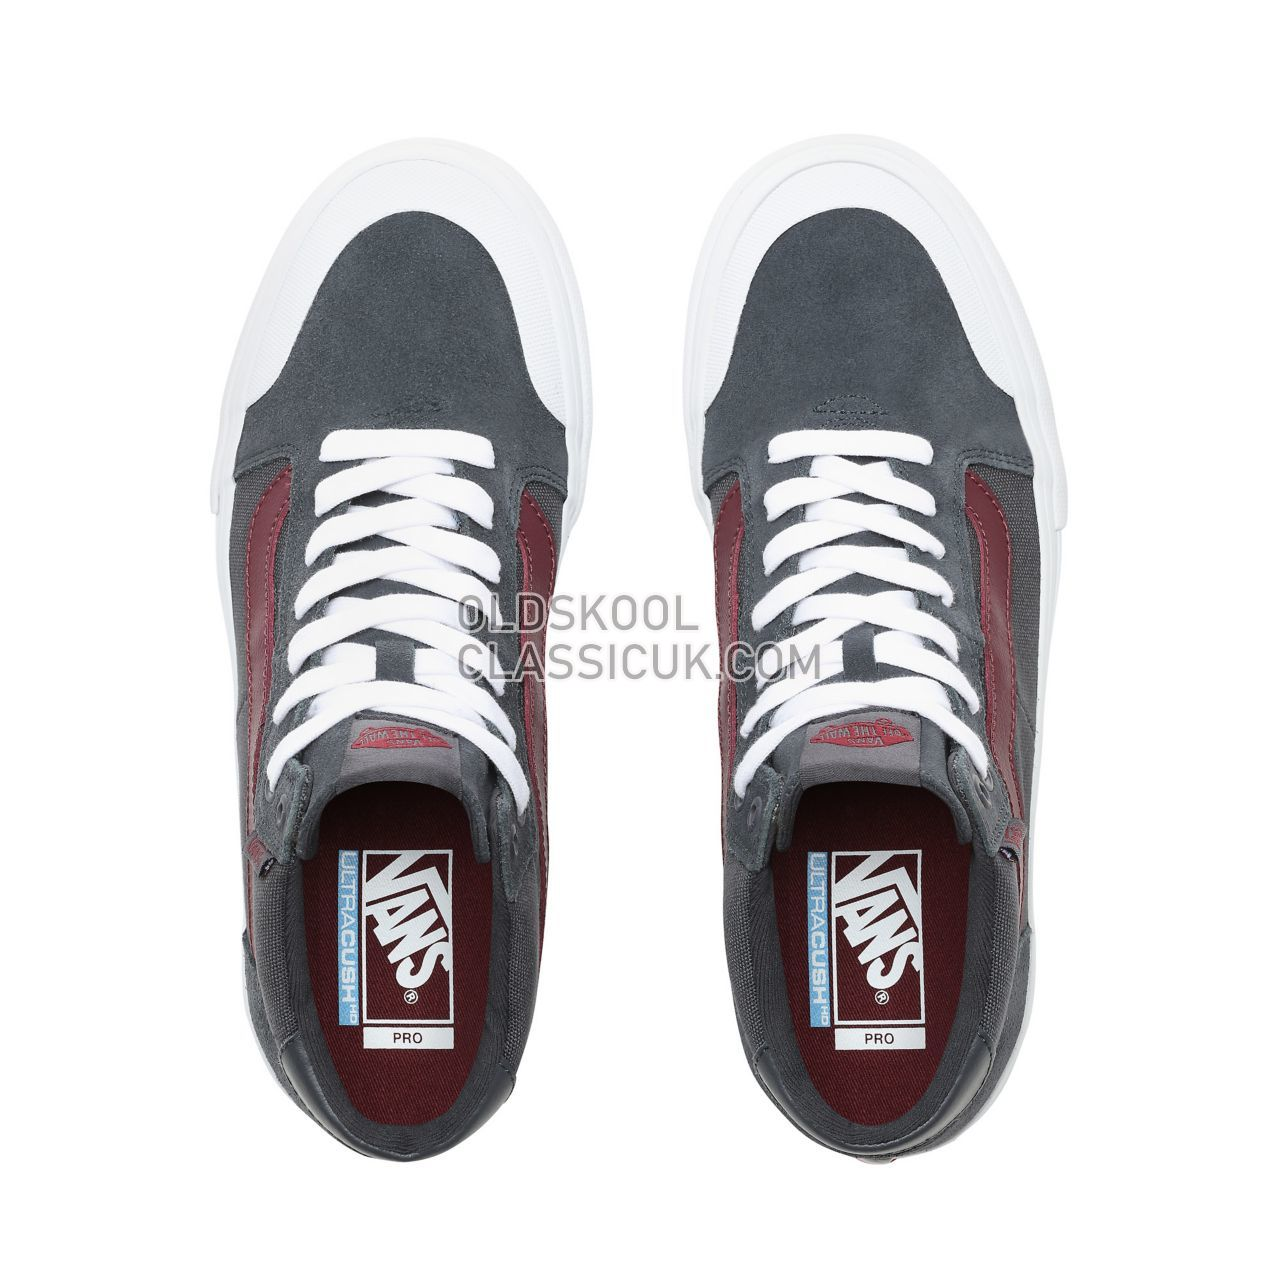 Vans Style 112 Mid Pro Sneakers Mens Ebony/Port Royale VN0A3DOVVGM Shoes